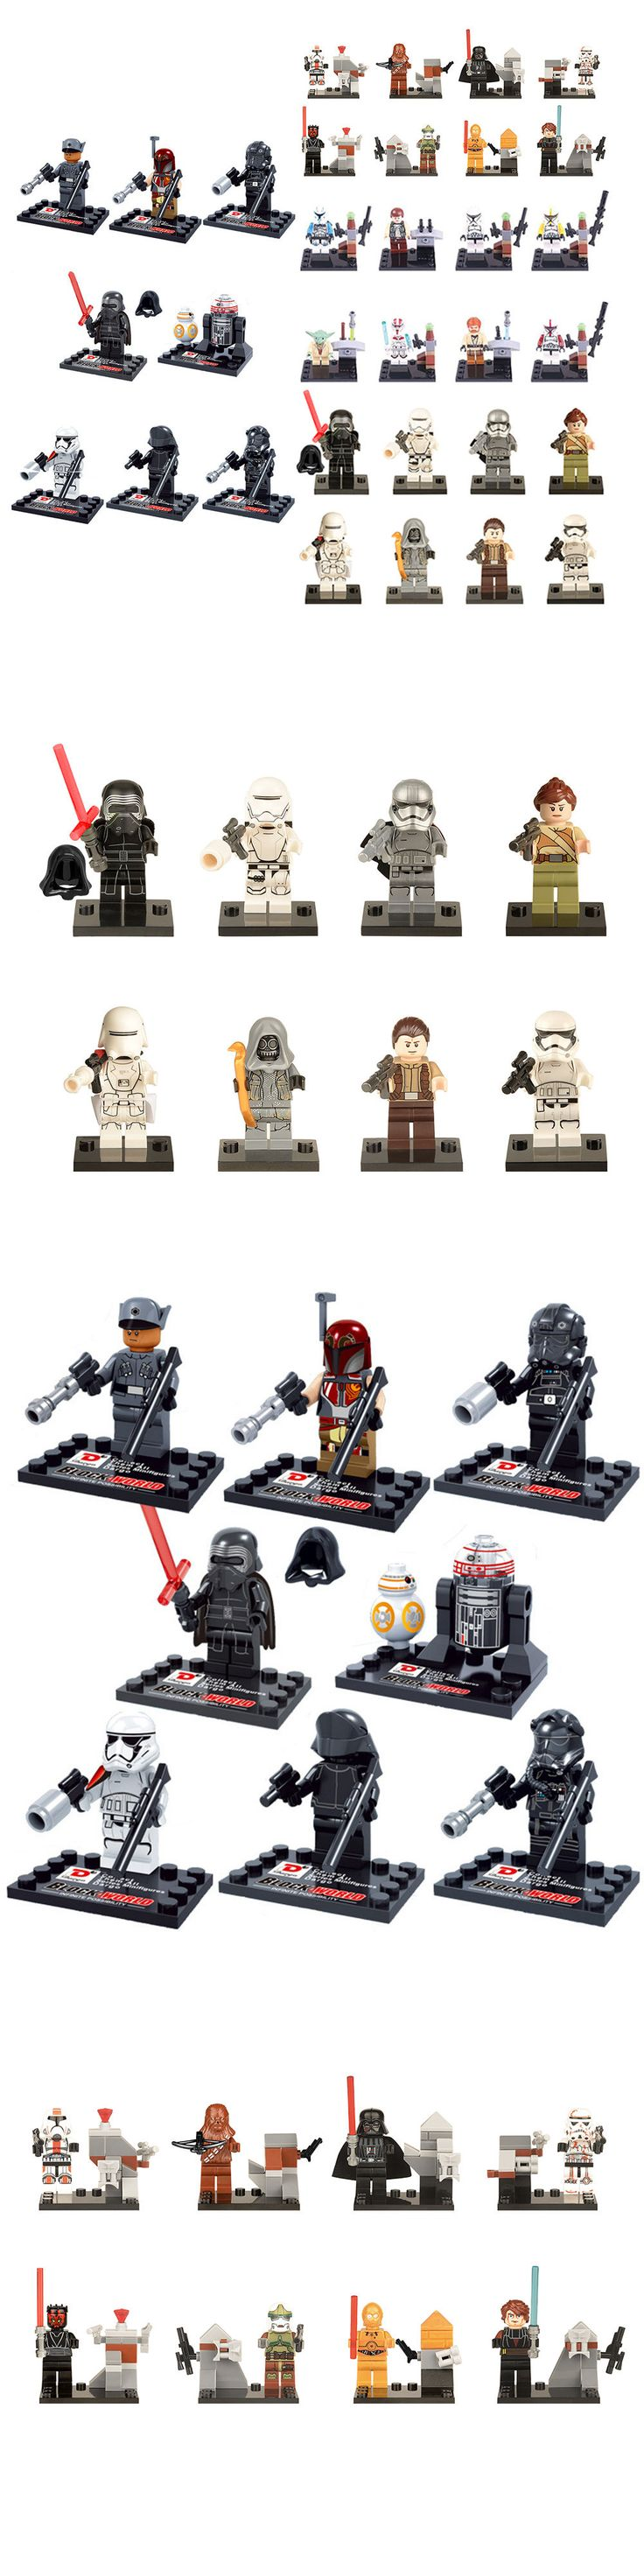 Other Building Toys 19015: 32Pcs Star Wars Clone Trooper Darth Yoda C-3P0 Bb8 Custom Mini Figure Fits Lego -> BUY IT NOW ONLY: $33.39 on eBay!